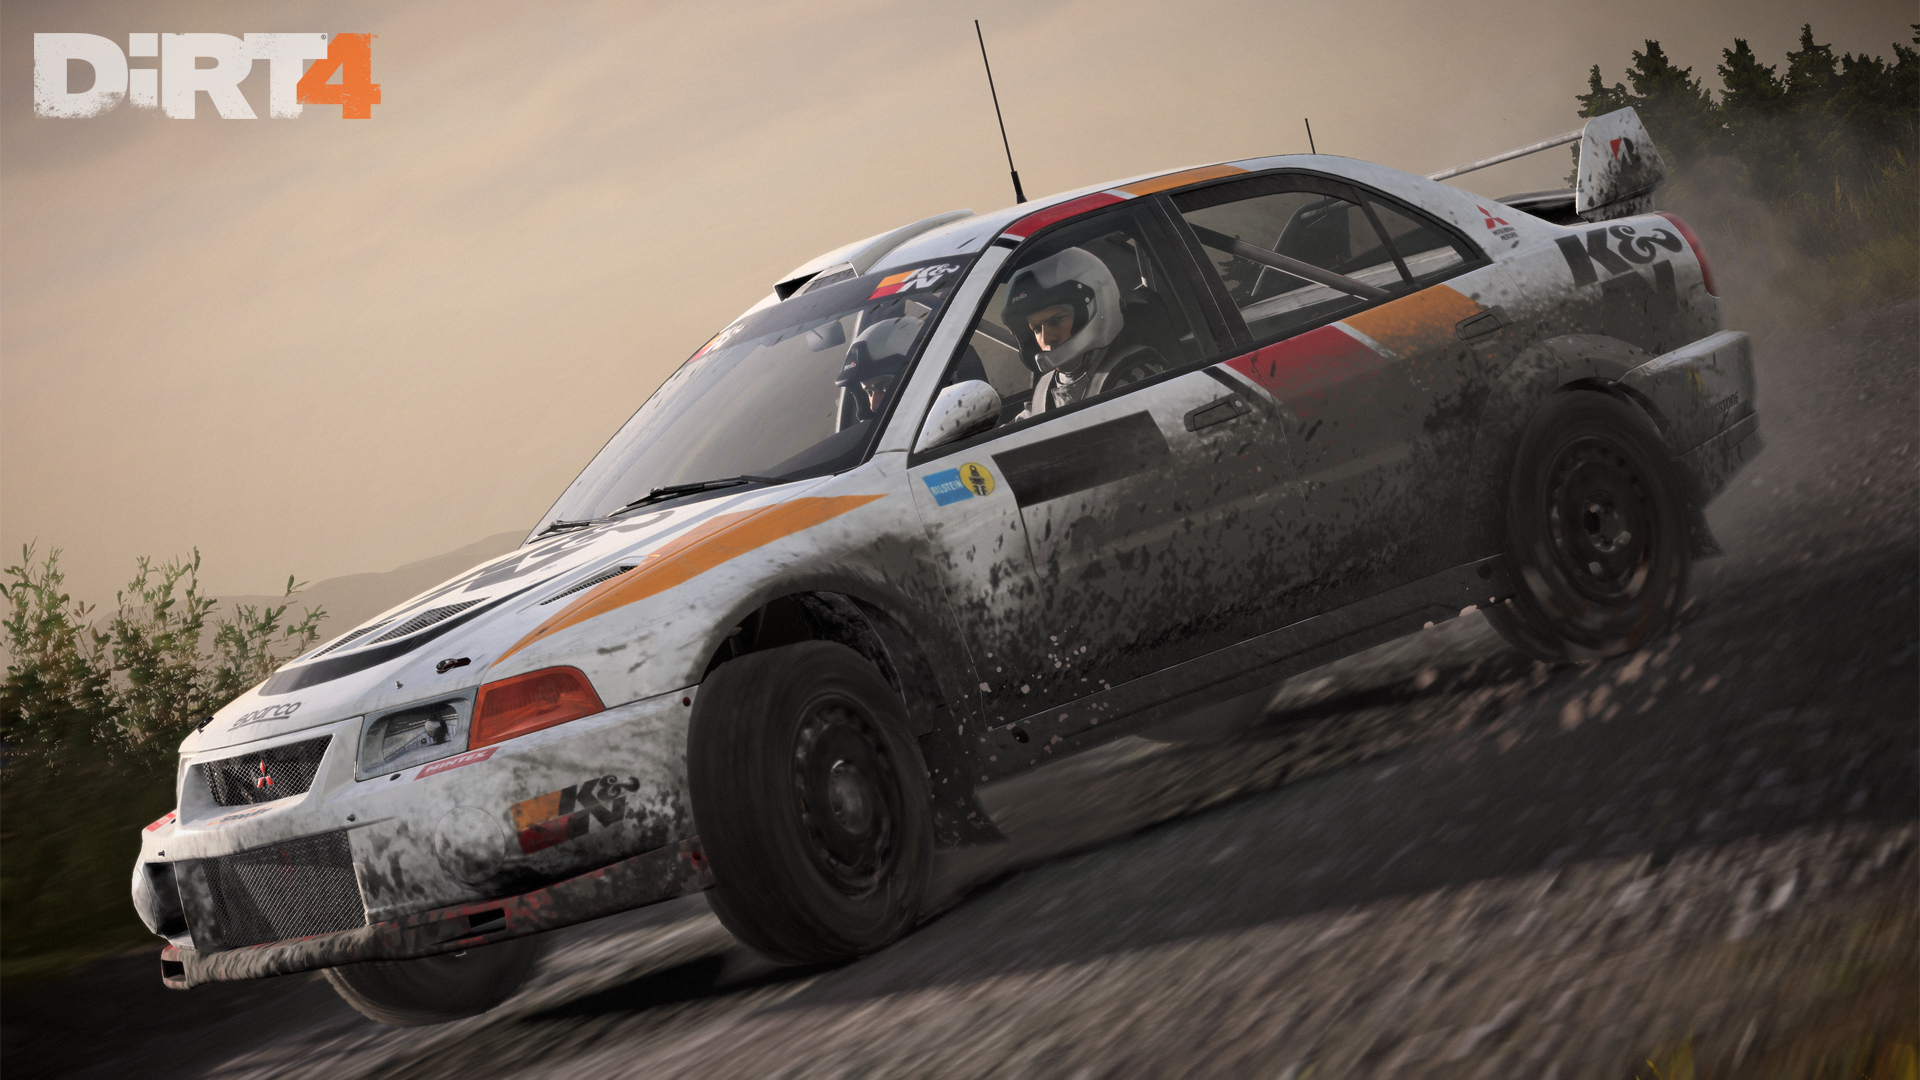 dirt 4 wallpapers, pictures, images